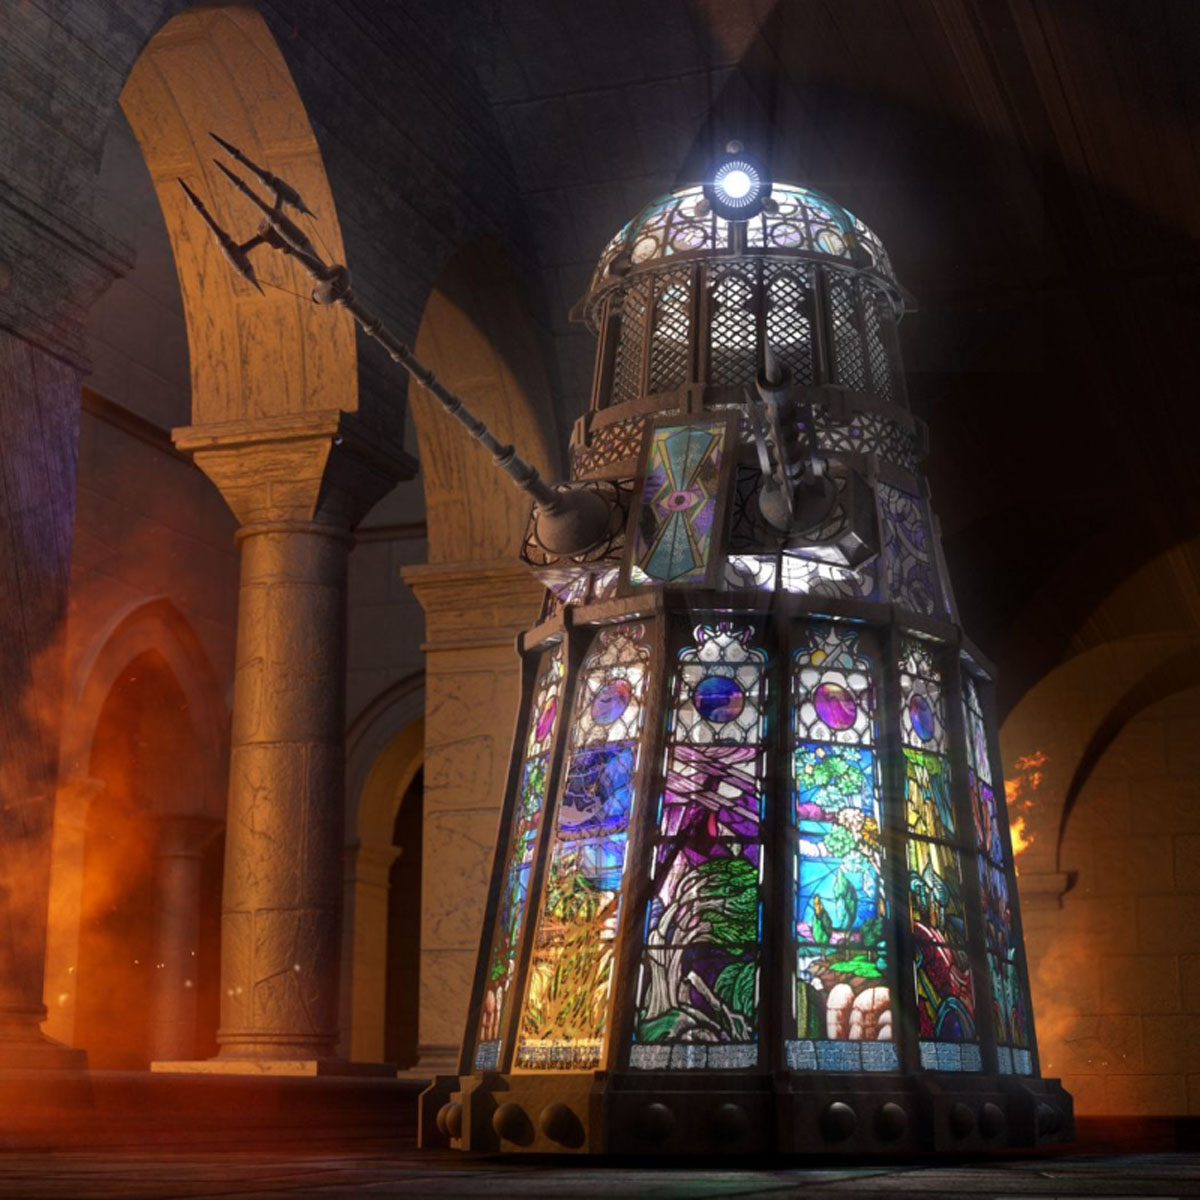 https://i2.wp.com/nerdist.com/wp-content/uploads/2016/10/Stained-Glass-Dalek.jpg